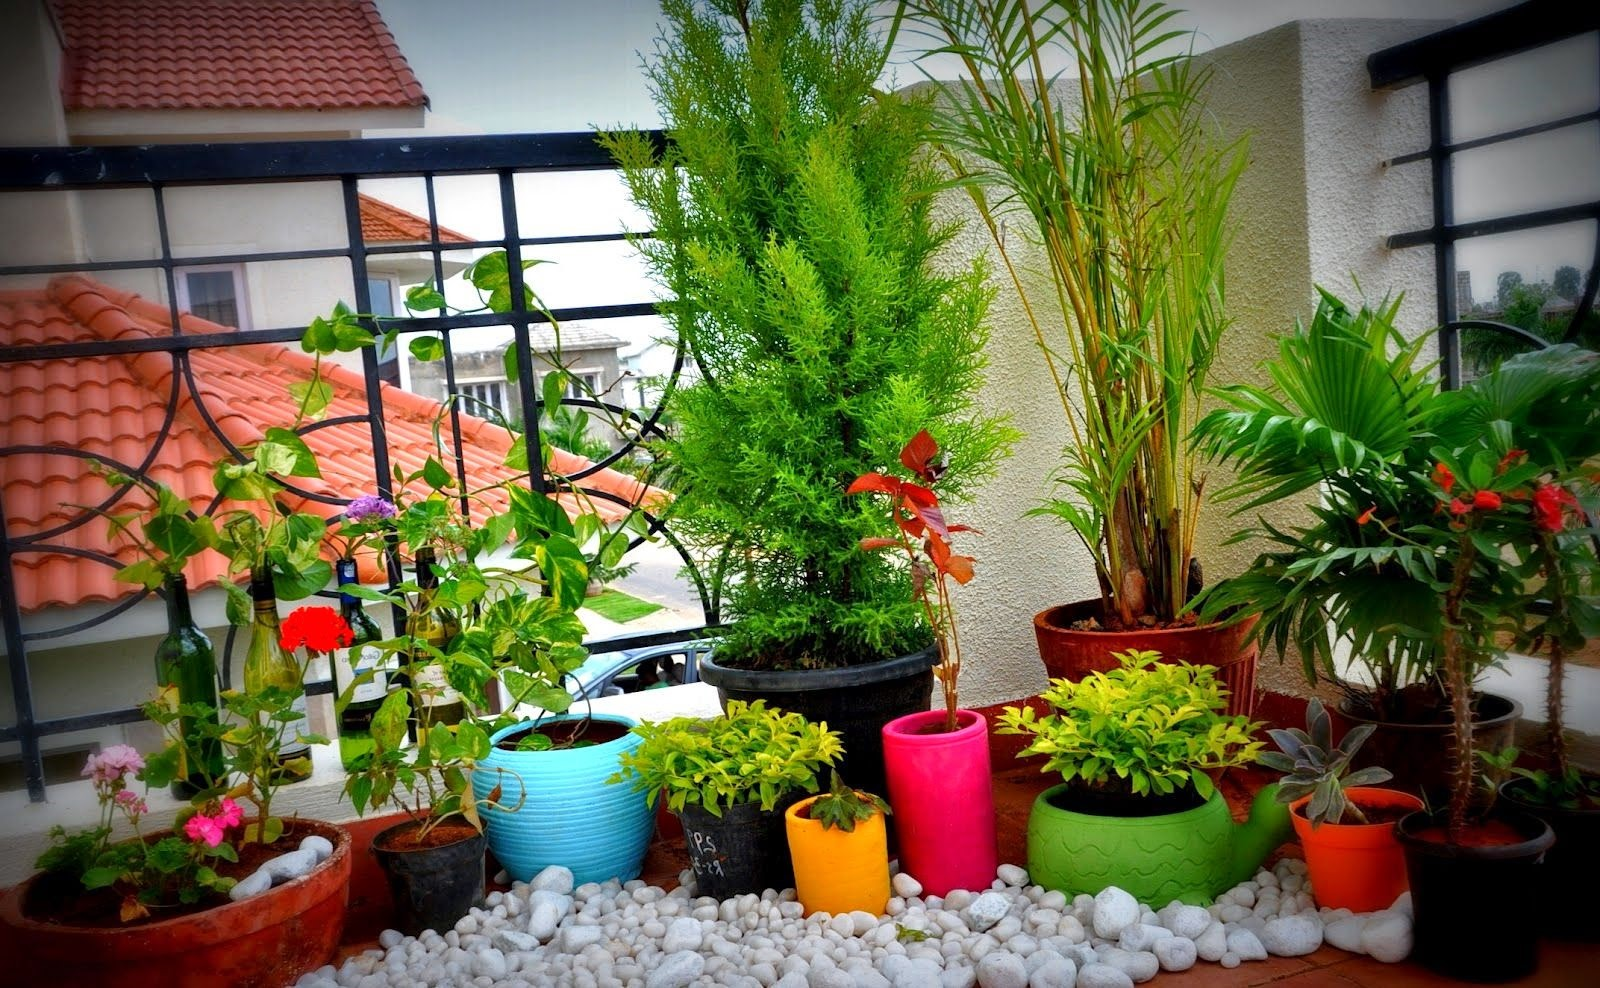 Balcony Garden Ideas For A Beautiful Home Decor - Latest Breaking